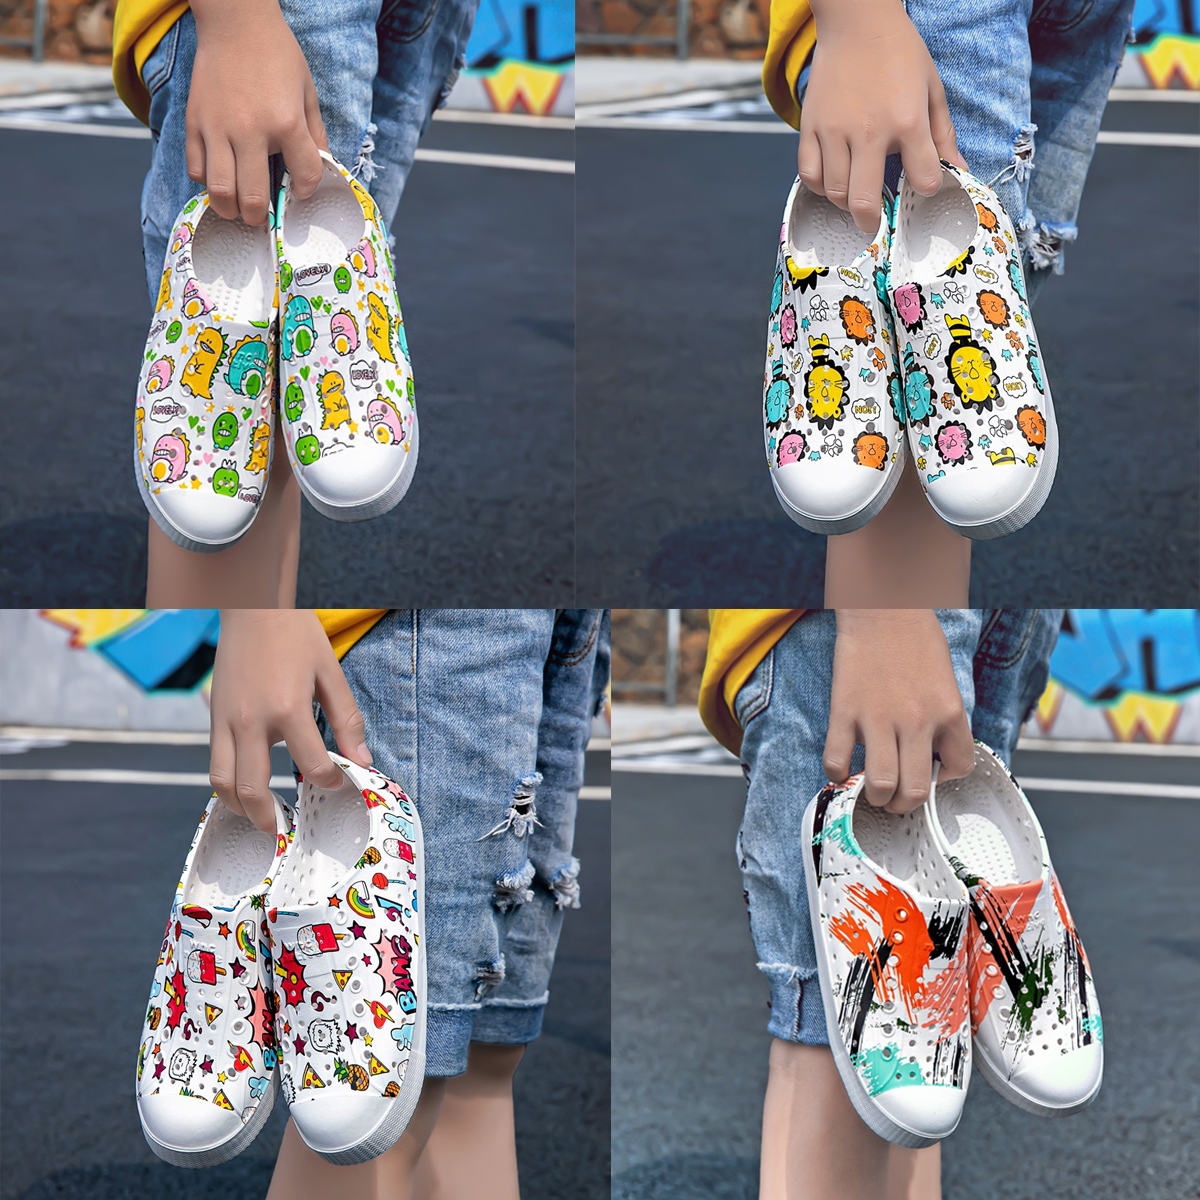 2021 new native childrens shoes Jefferson childrens hole shoes non slip boys and girls SANDALS BEACH SHOES